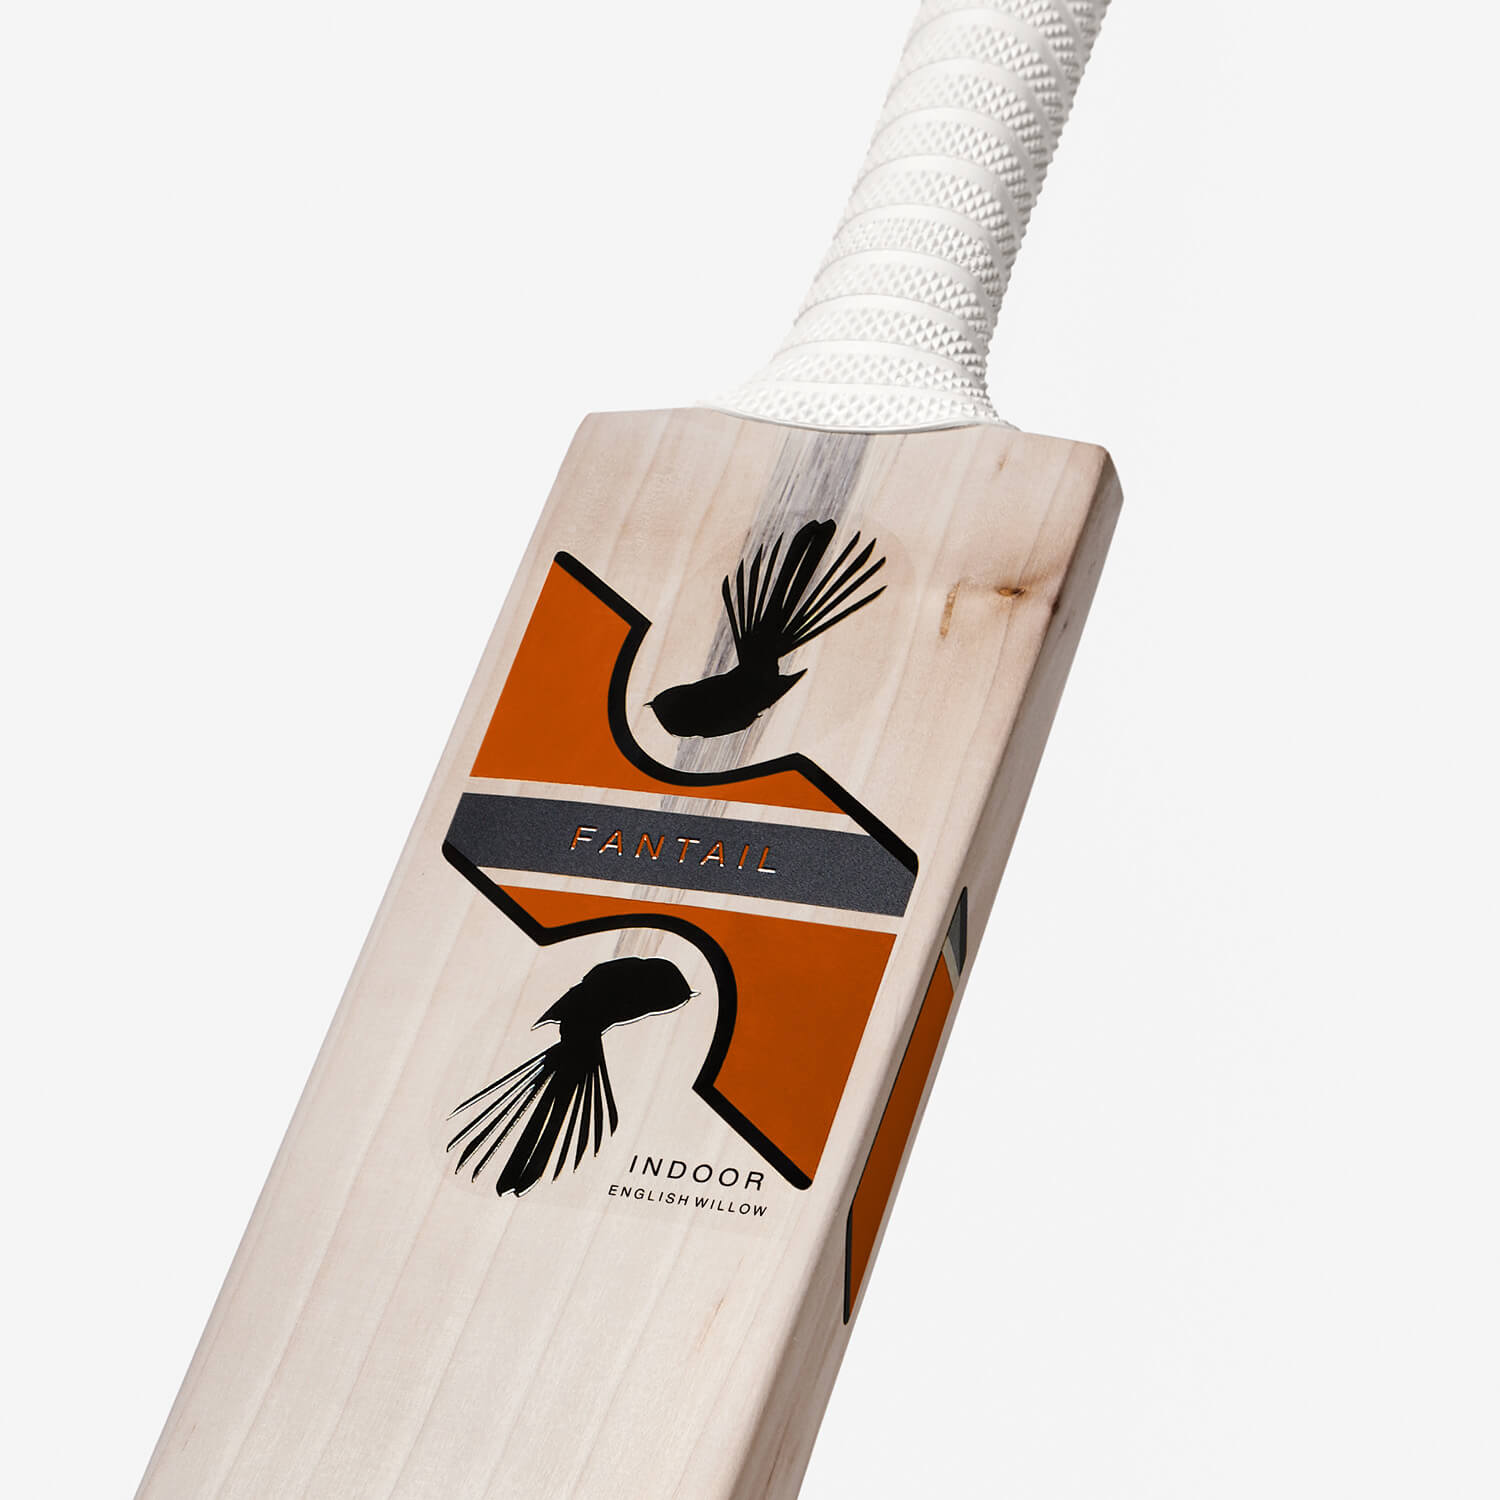 Studio Product photography of wooden cricket bats in New Zealand